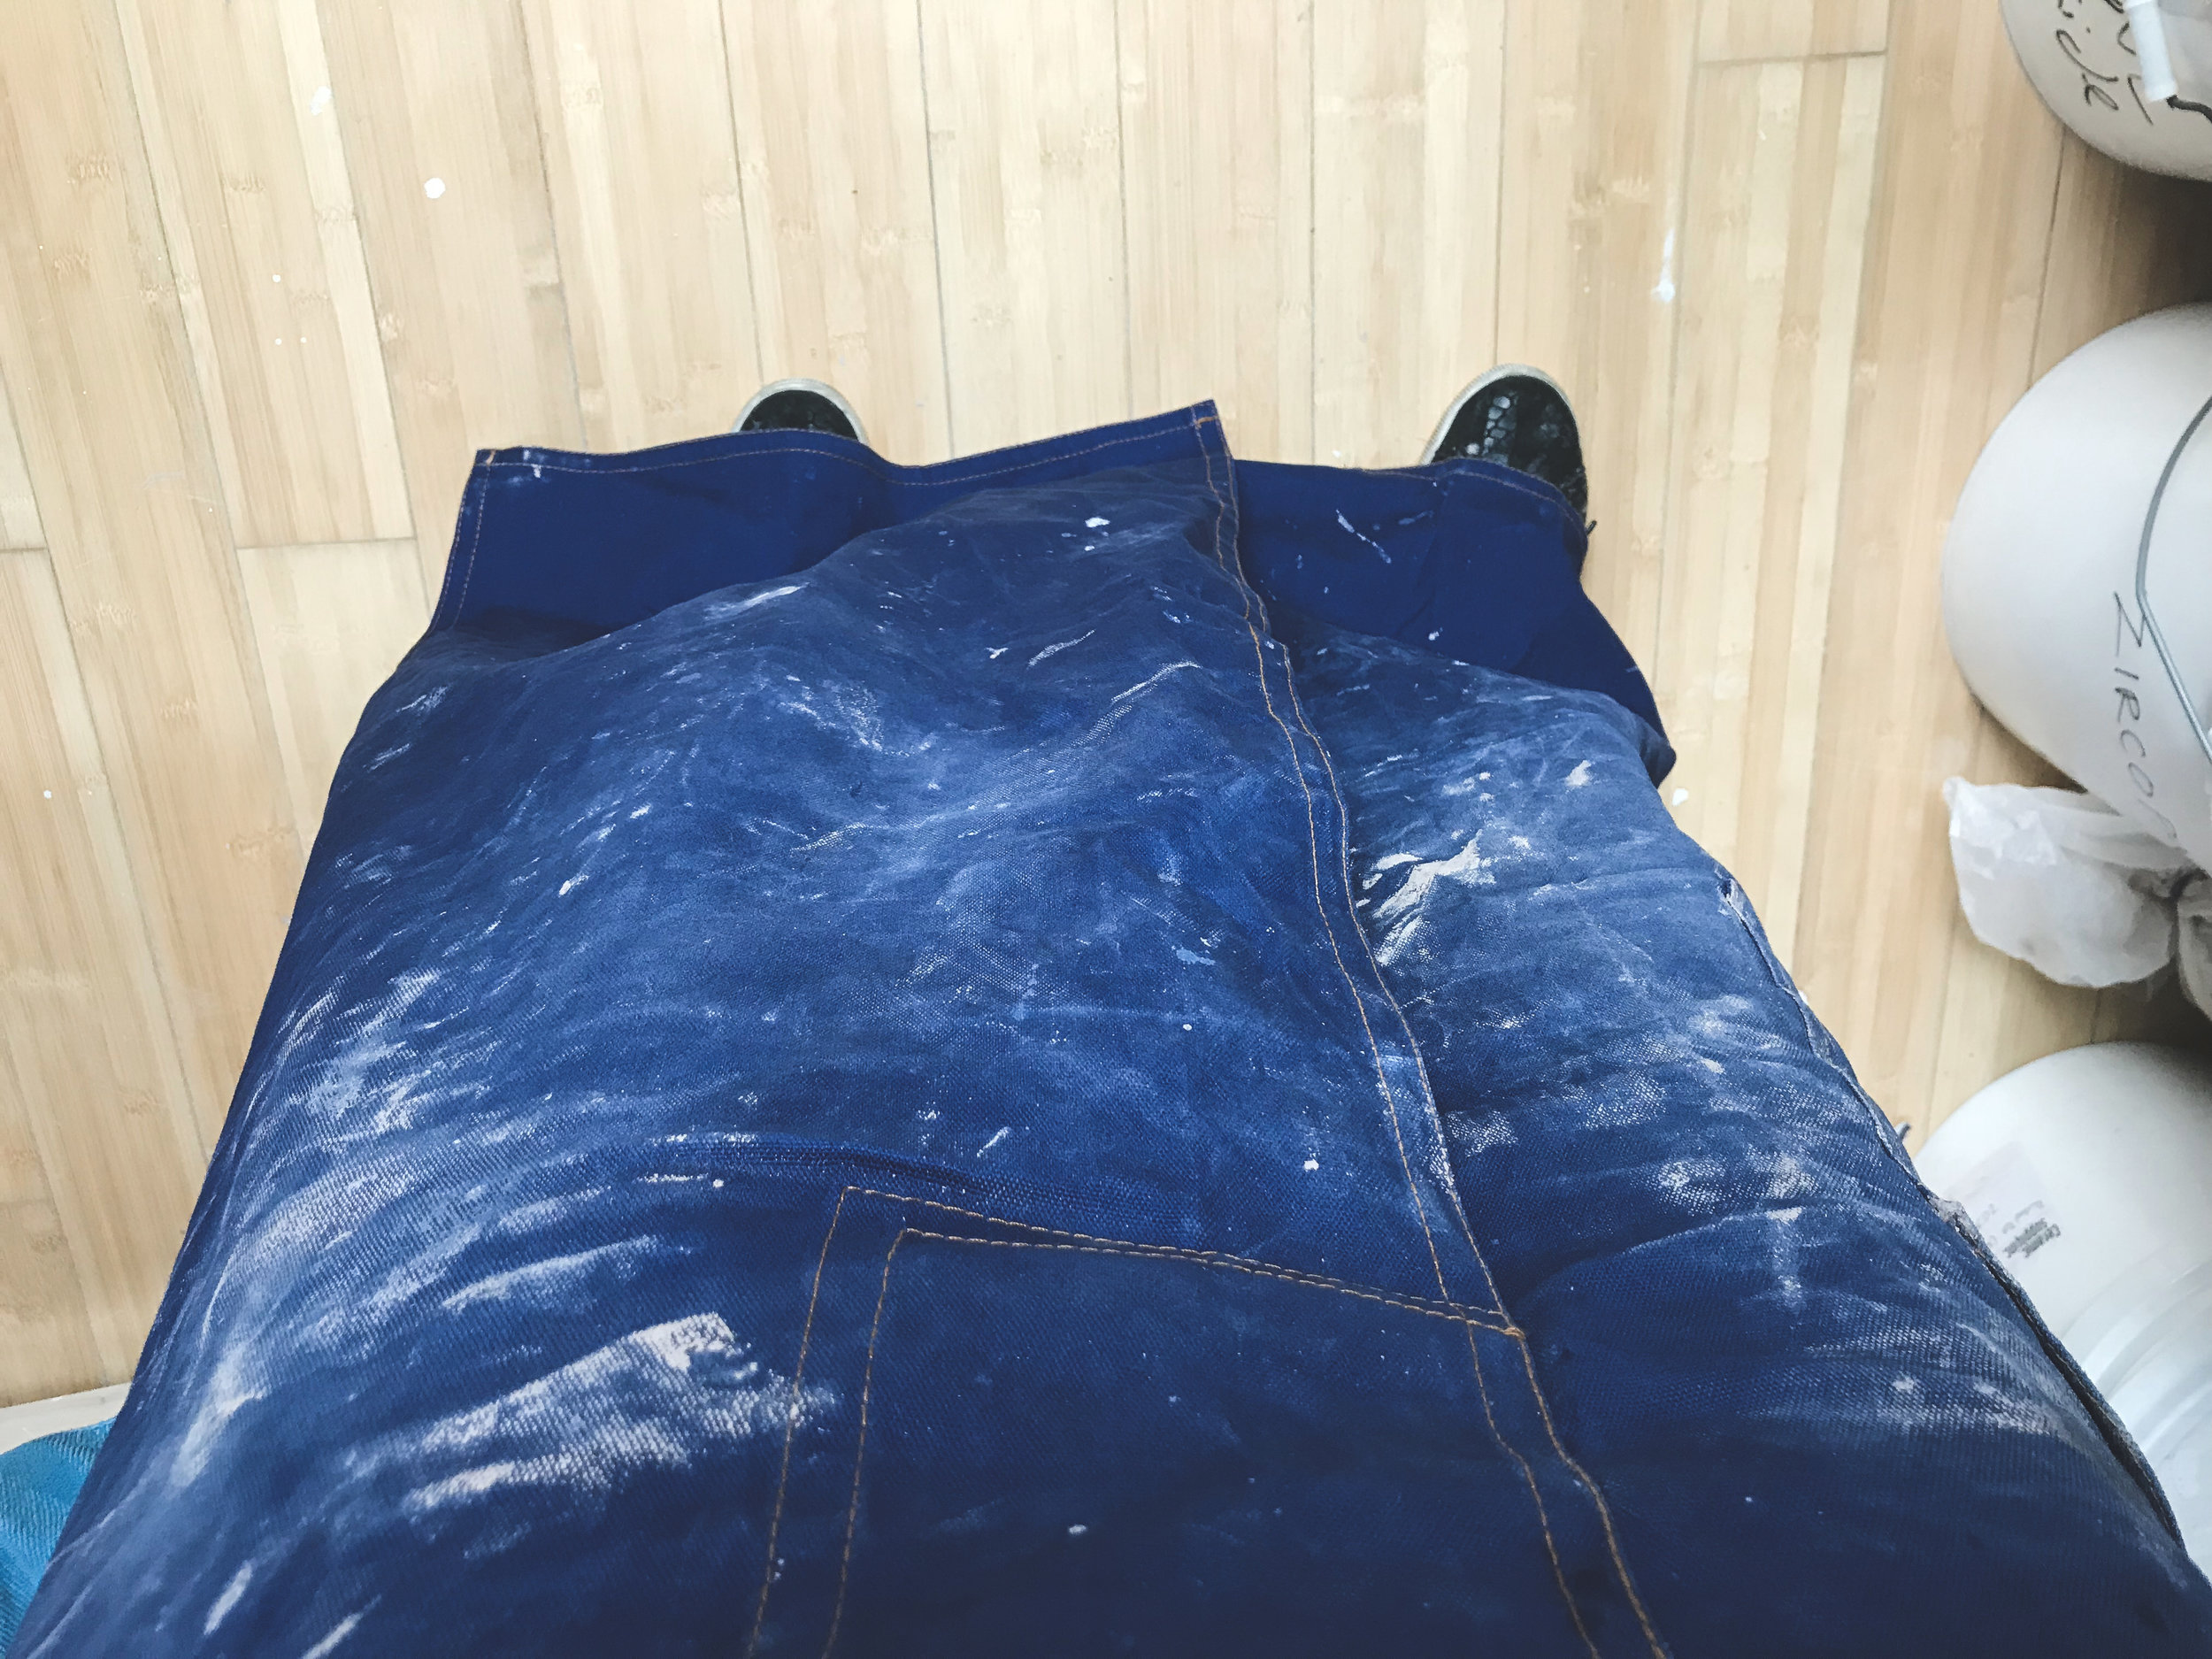 """Måns gave me a Baleia Blu blue """"claypron,"""" and it's the best. It's split down the middle, so that it actually works when you're on the wheel. And it's so beautifully blue."""